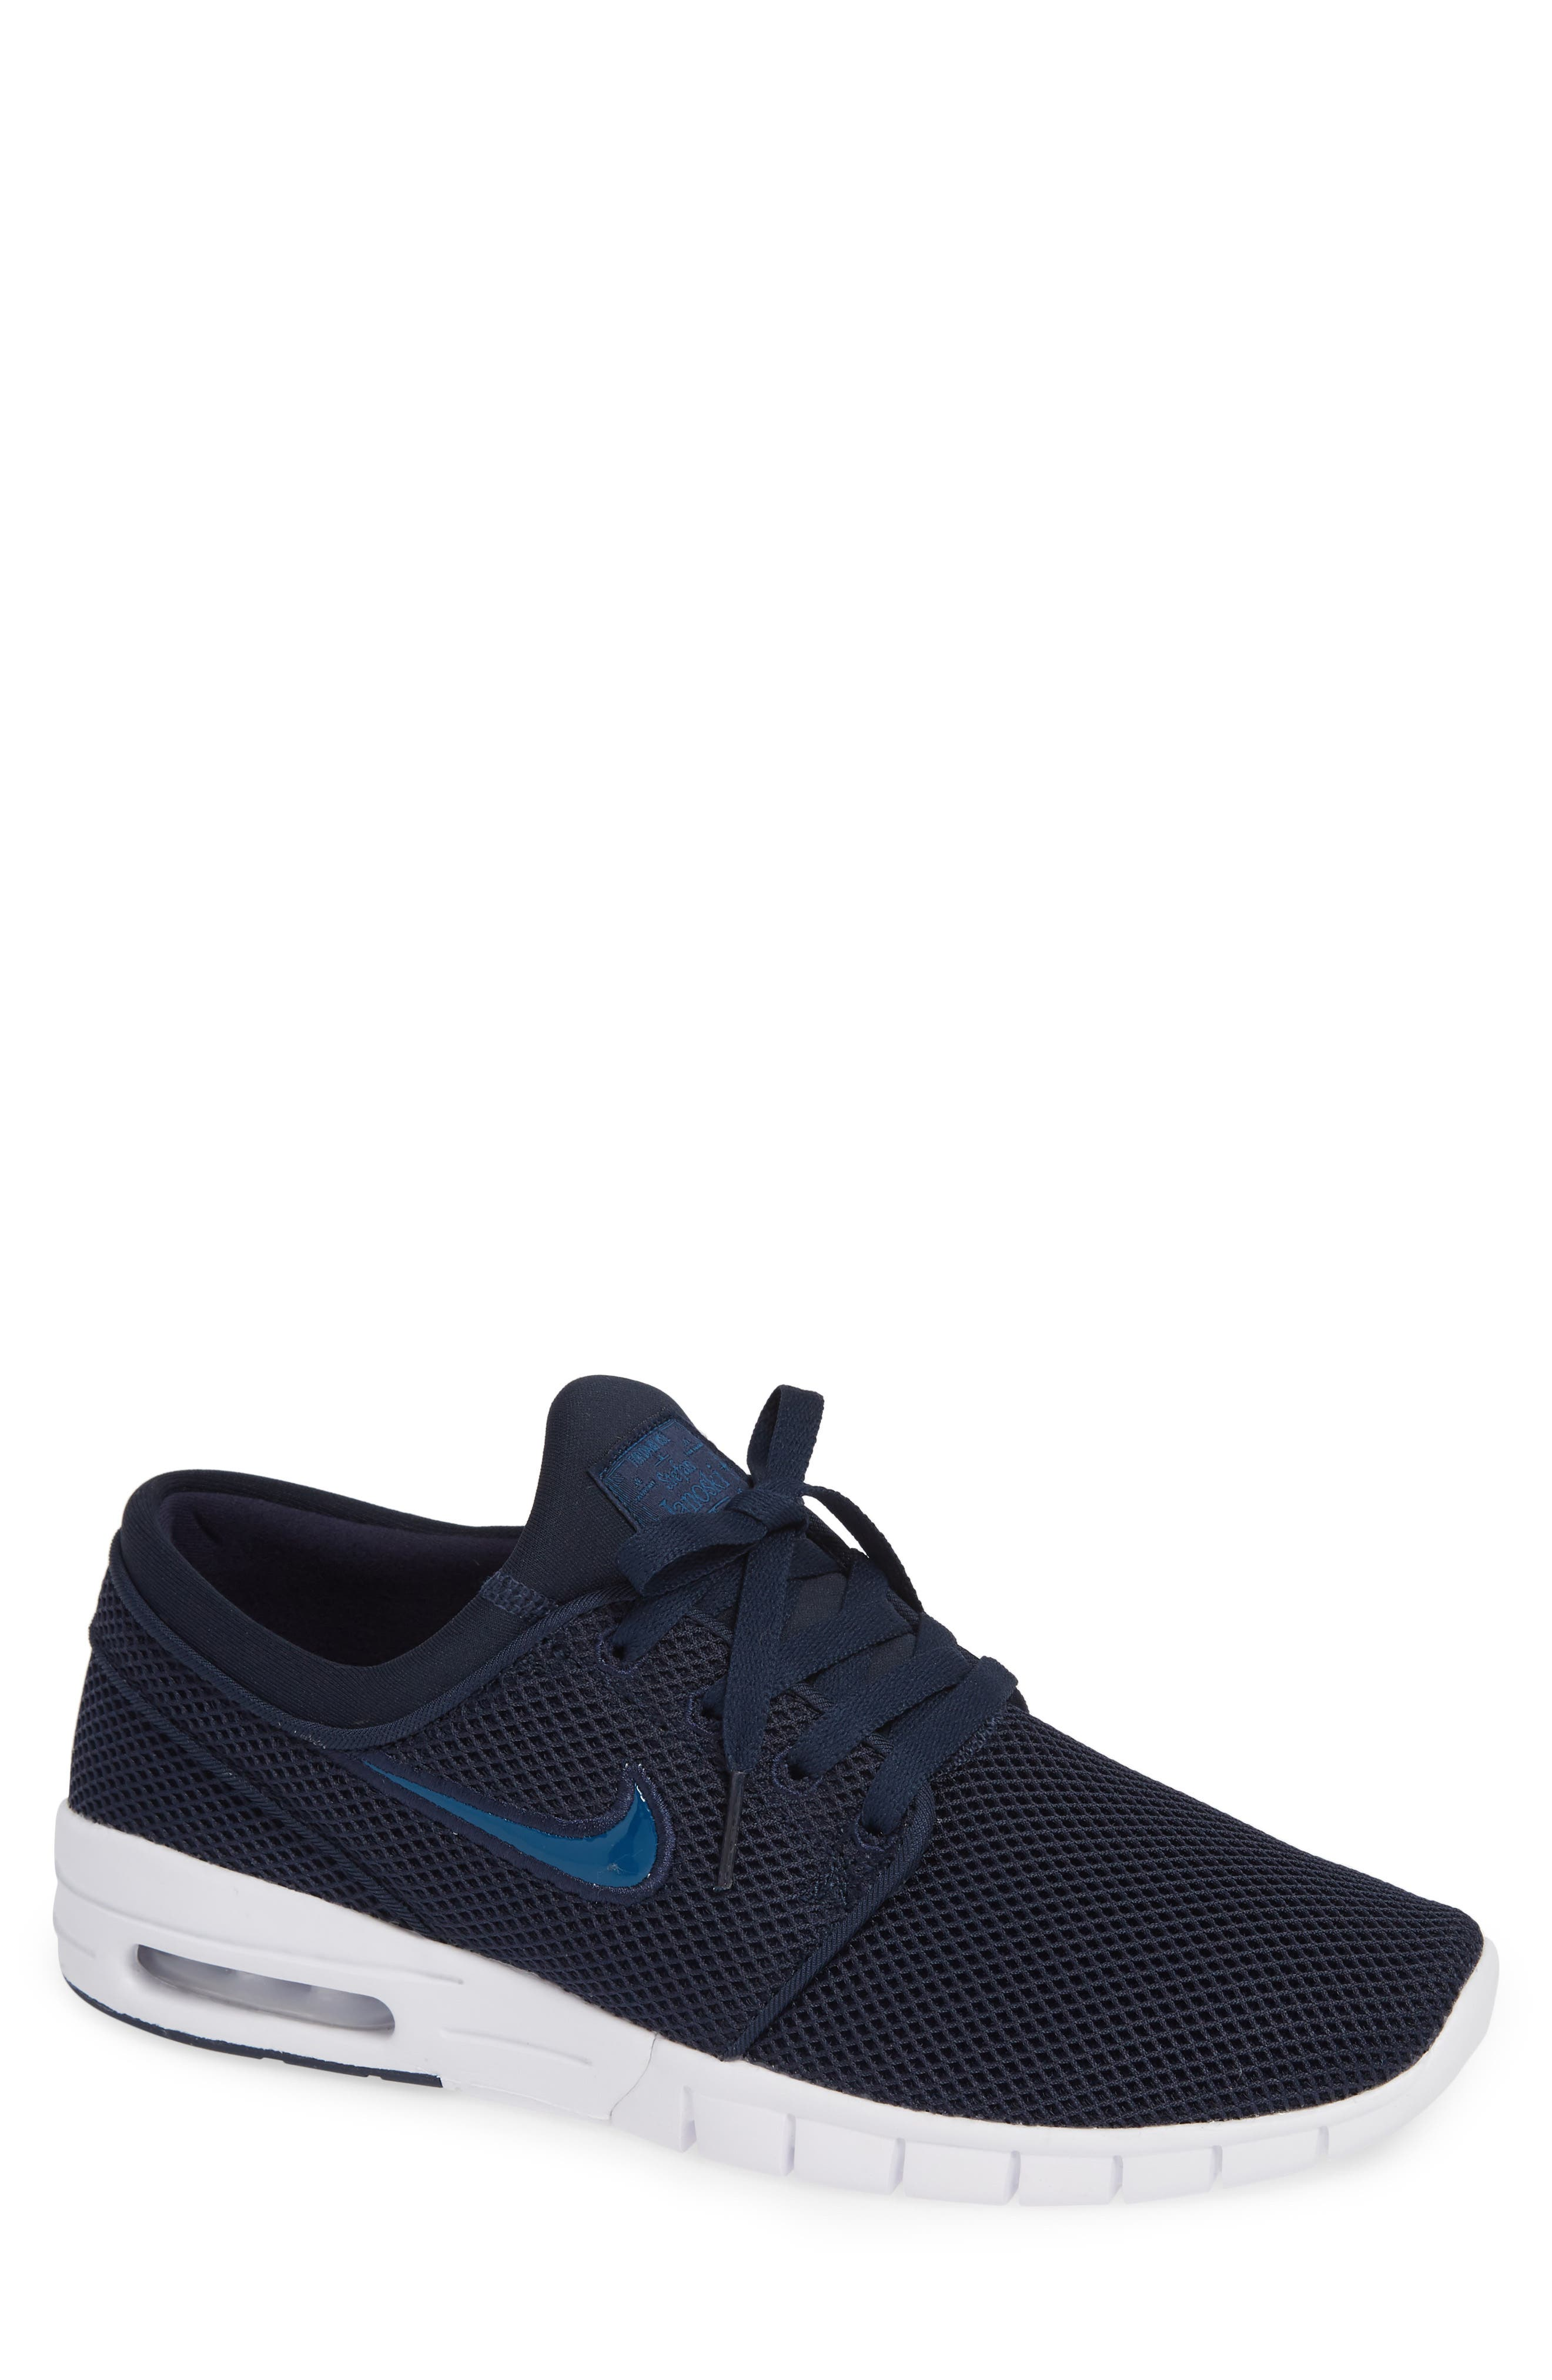 'Stefan Janoski - Max SB' Skate Shoe,                         Main,                         color, 407